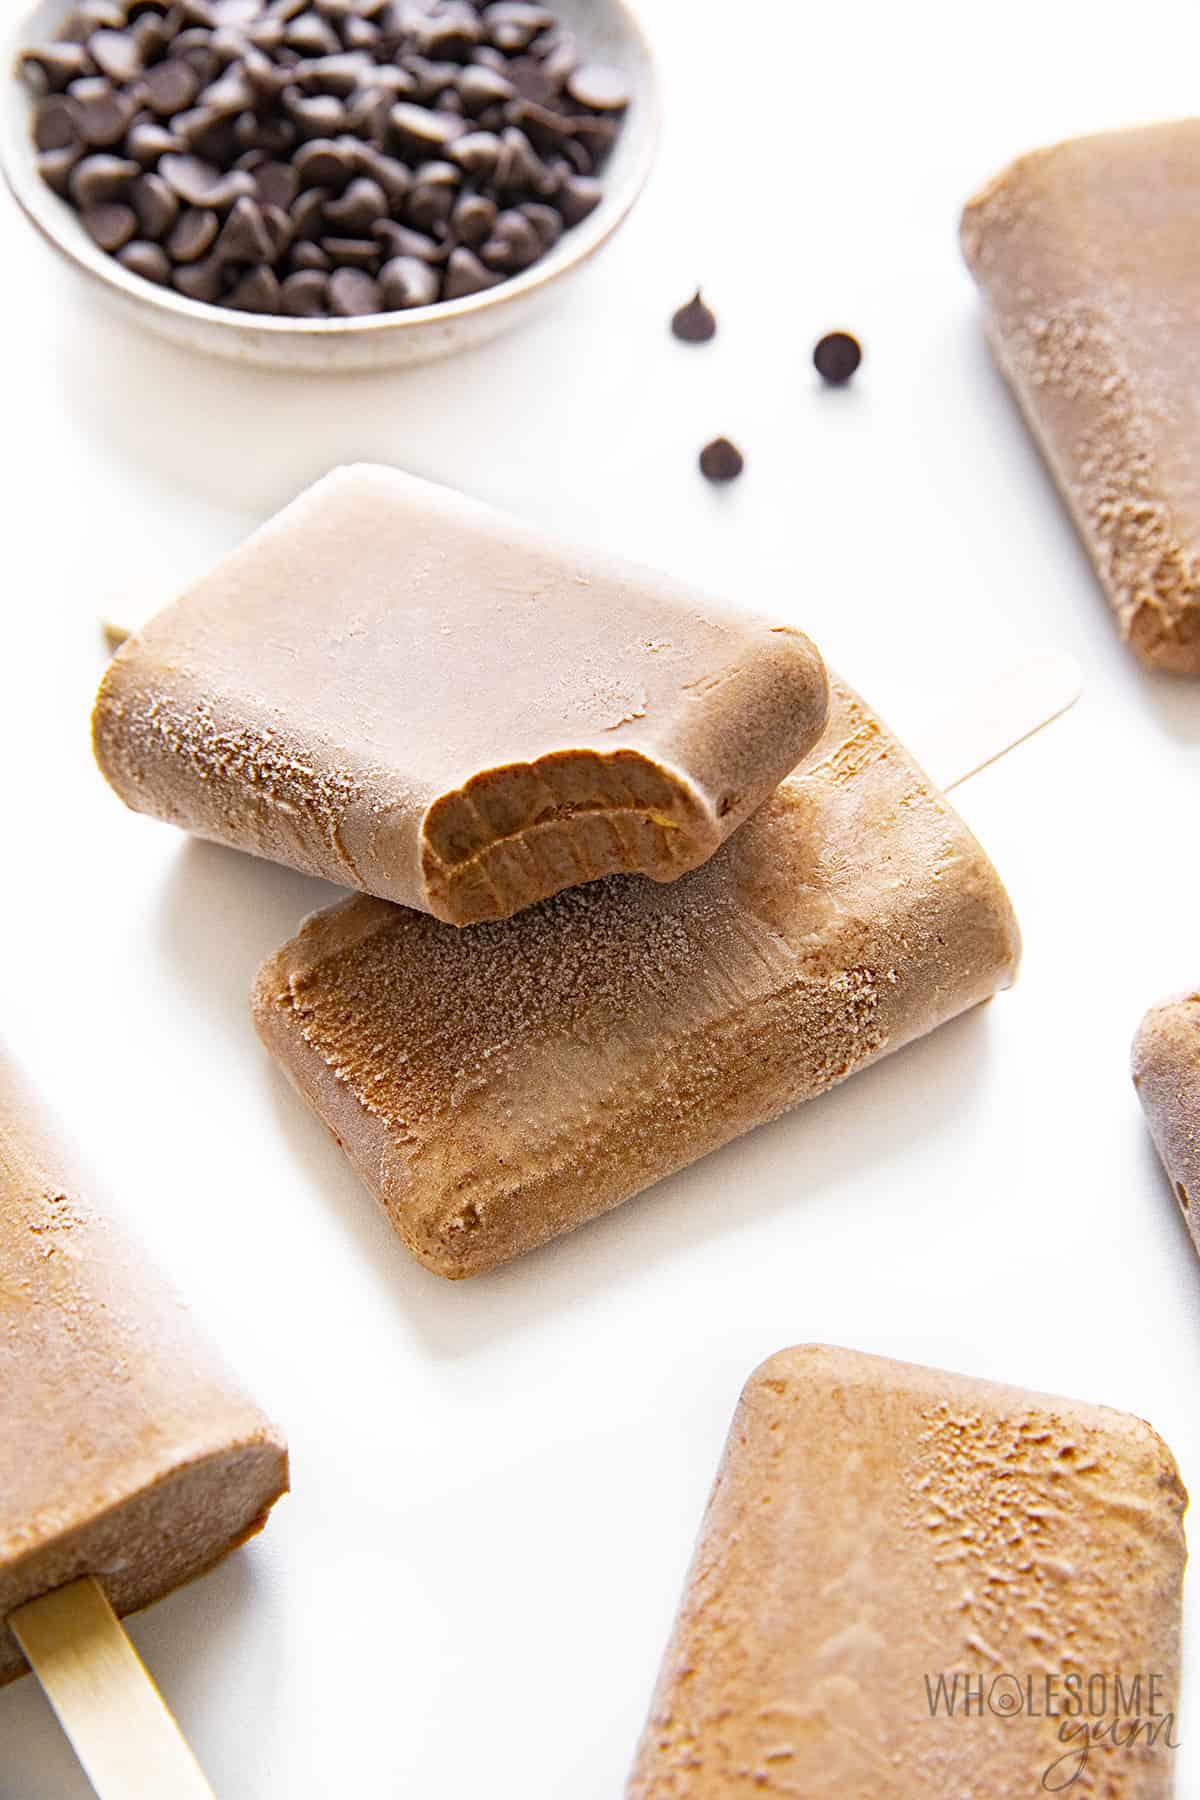 Scattered sugar free fudge pops with one bite taken out of one pop